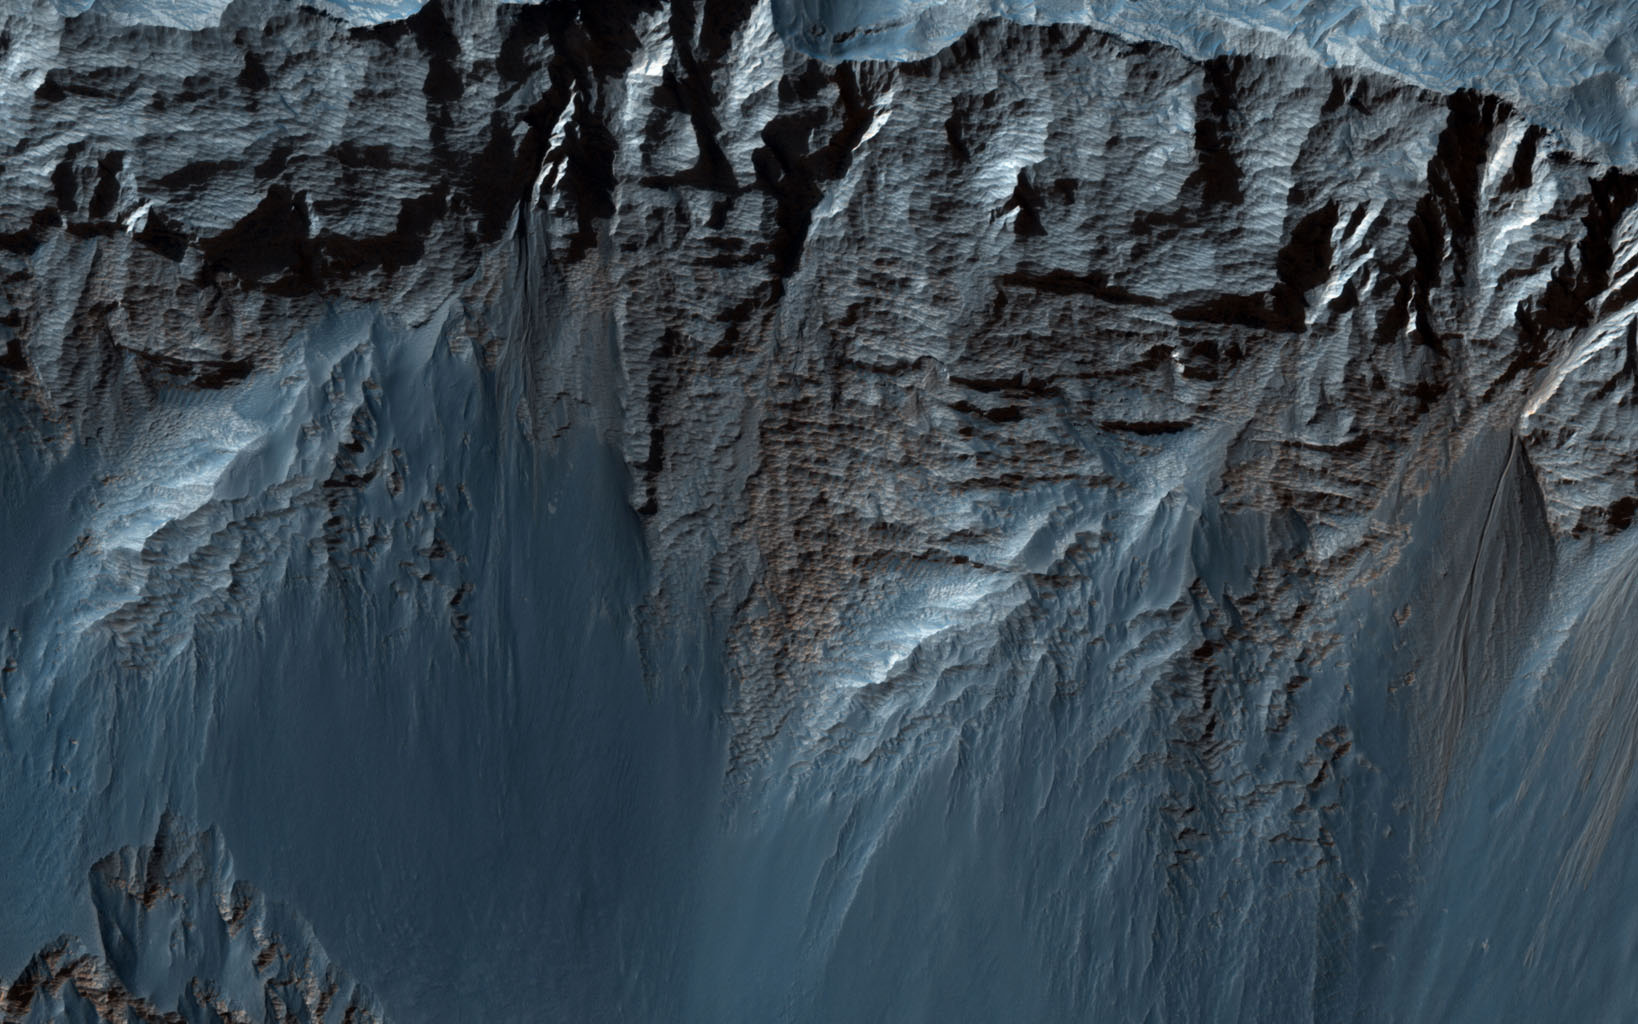 This beautiful image shows terrific layers and exposed bedrock along a cliff in west Candor Chasma, which is part of the extensive Valles Marineris canyon system as seen by NASA's Mars Reconnaissance Orbiter.